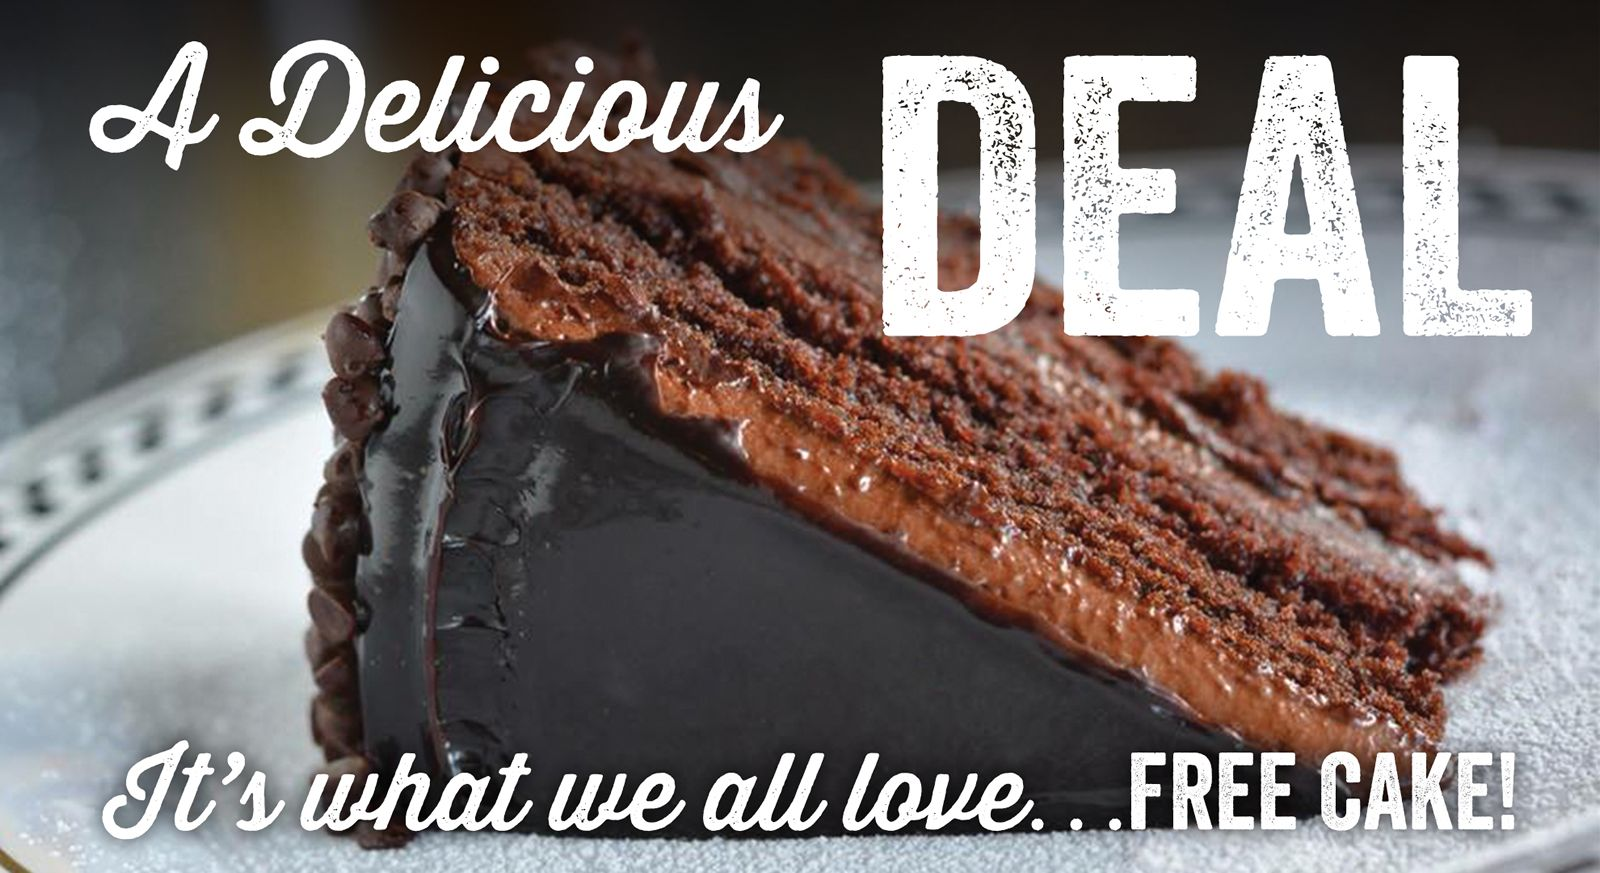 Anthony's Coal Fired Pizza and Door Dash are Giving Away Decadent Chocolate Cake